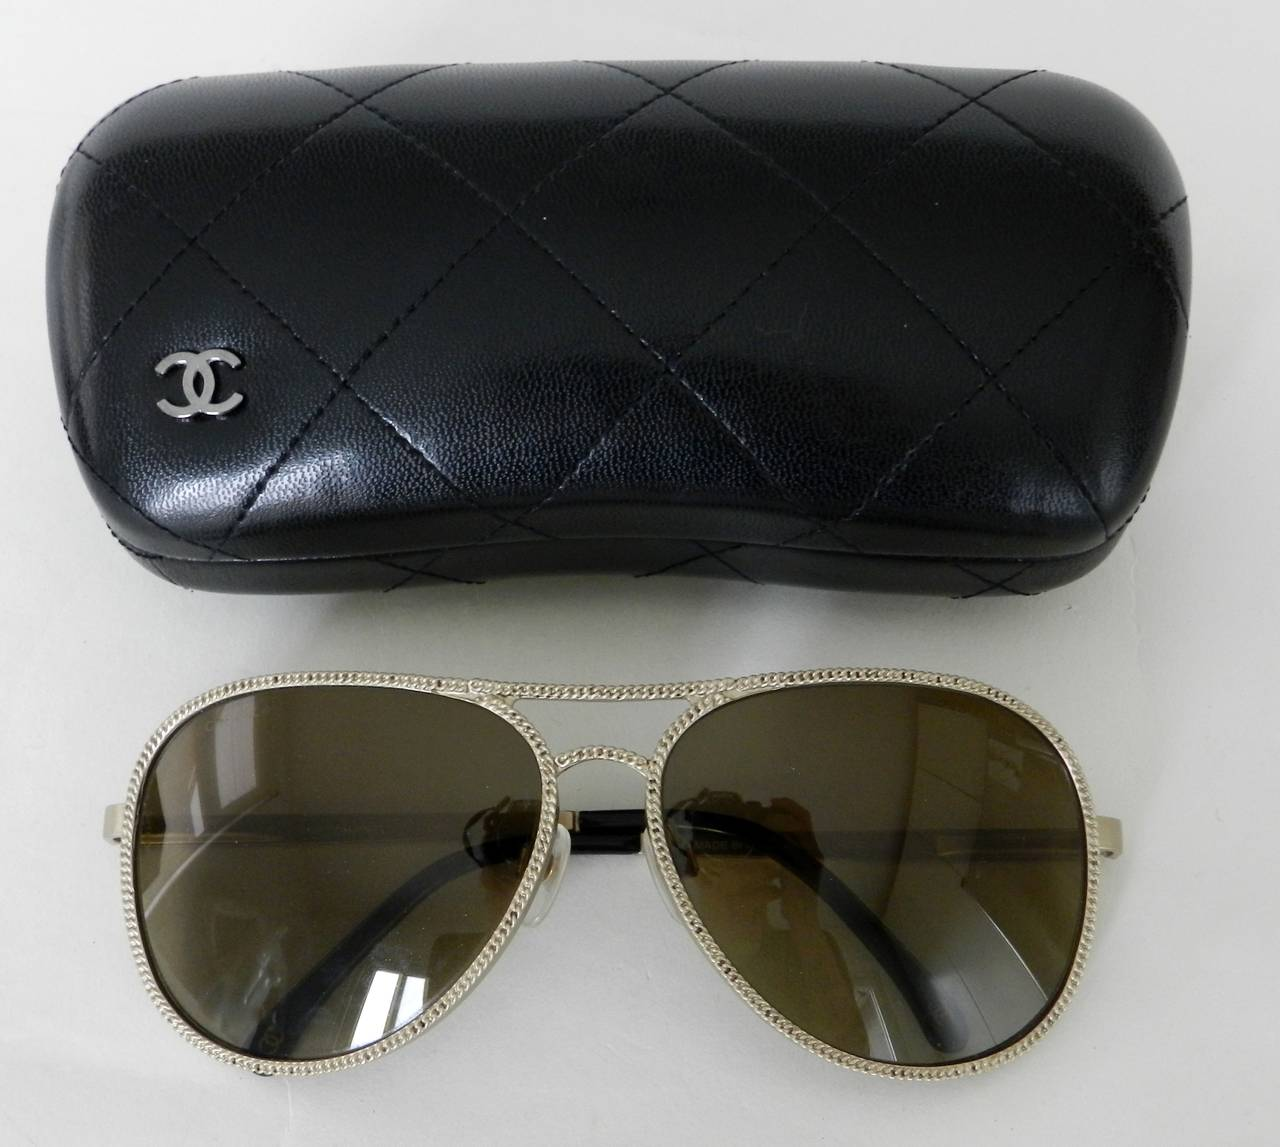 b2fbb0eb744 Chanel 2011 Resort runway collection sunglasses. Matte champagne goldtone  with brown lens. Lens has